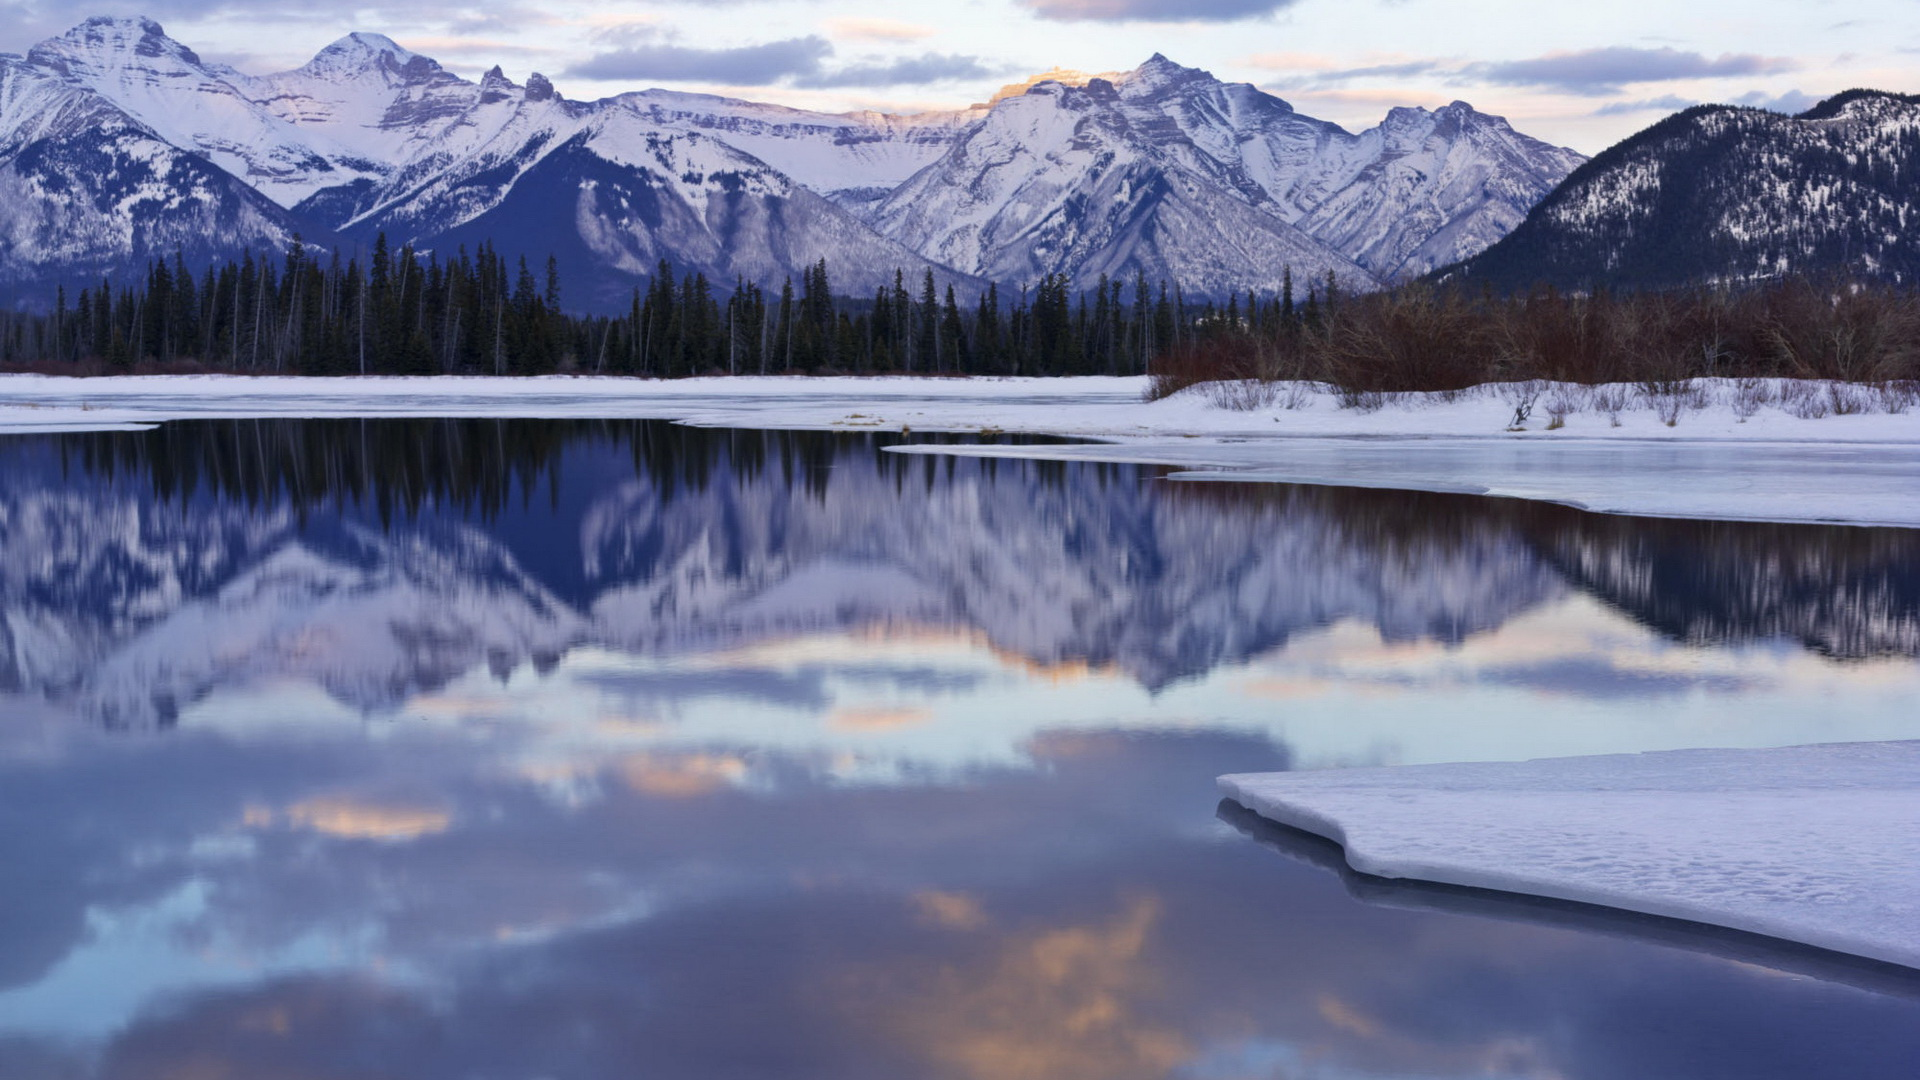 Snow Covered Mountain Reflections - Wallpaper #3256